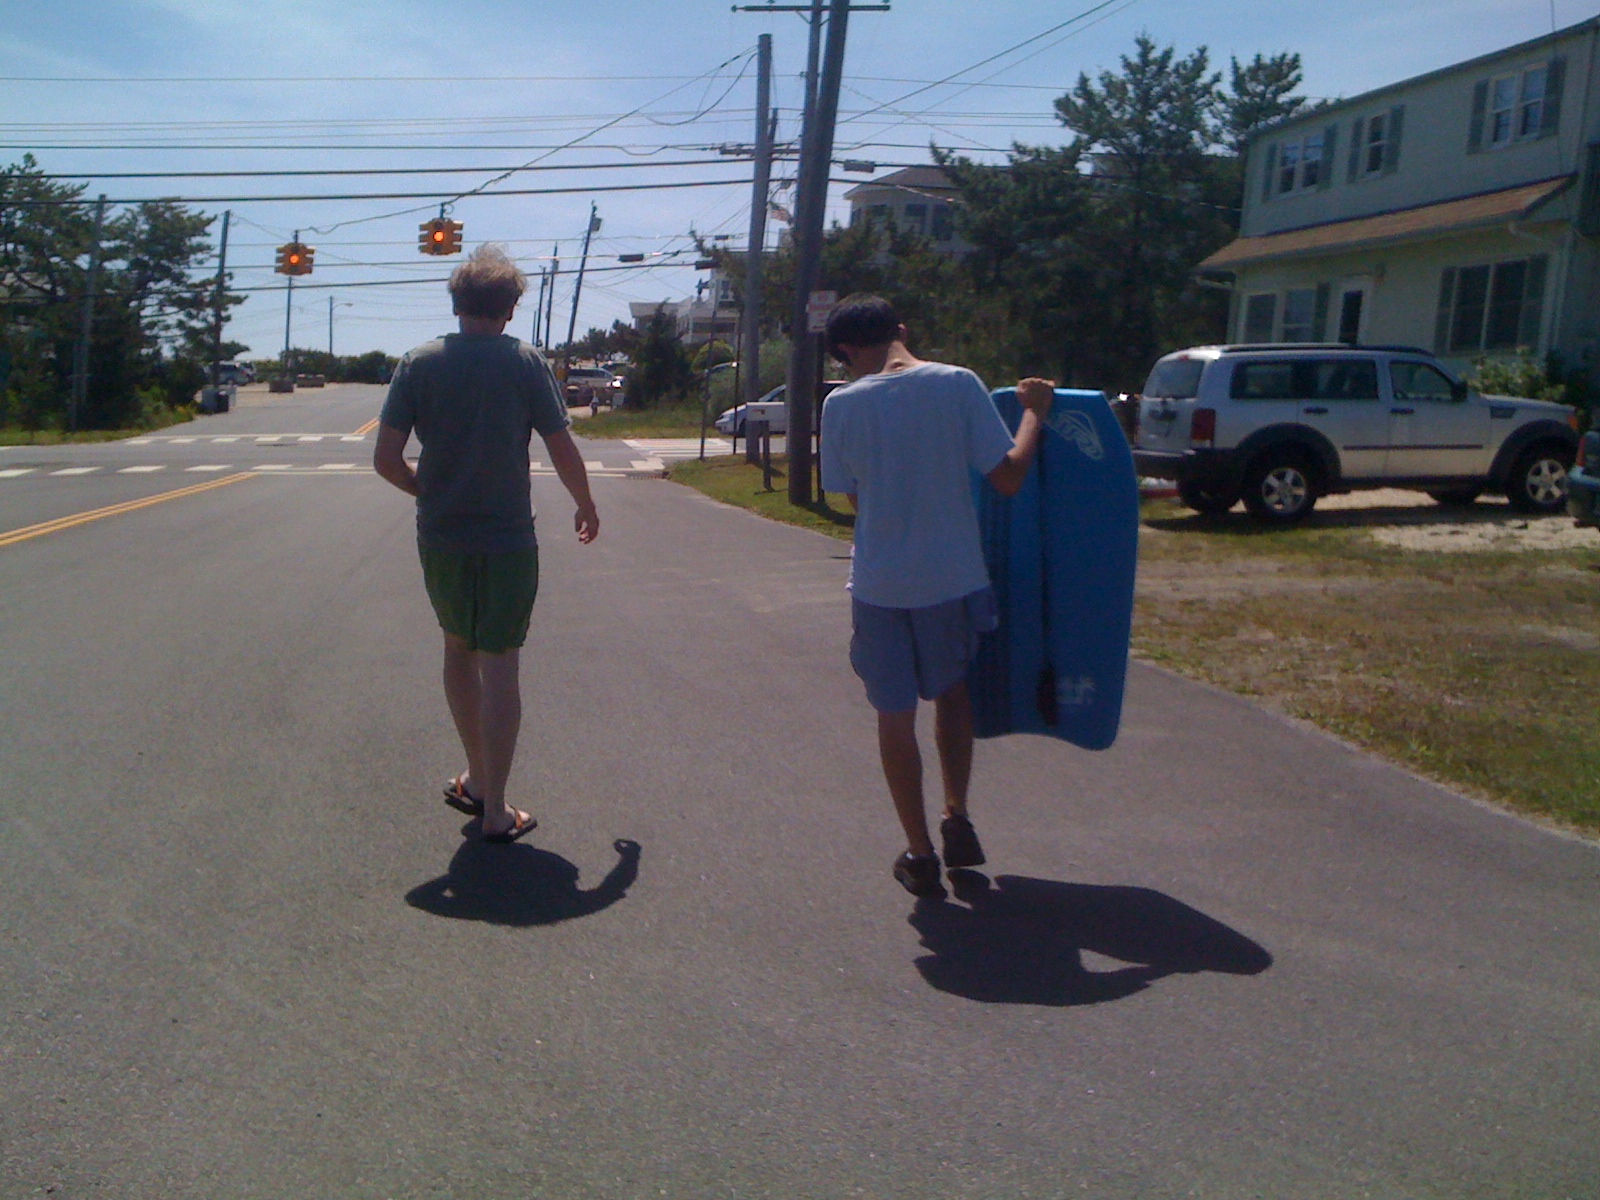 Jim and Charlie walking to the beach avec boogie board